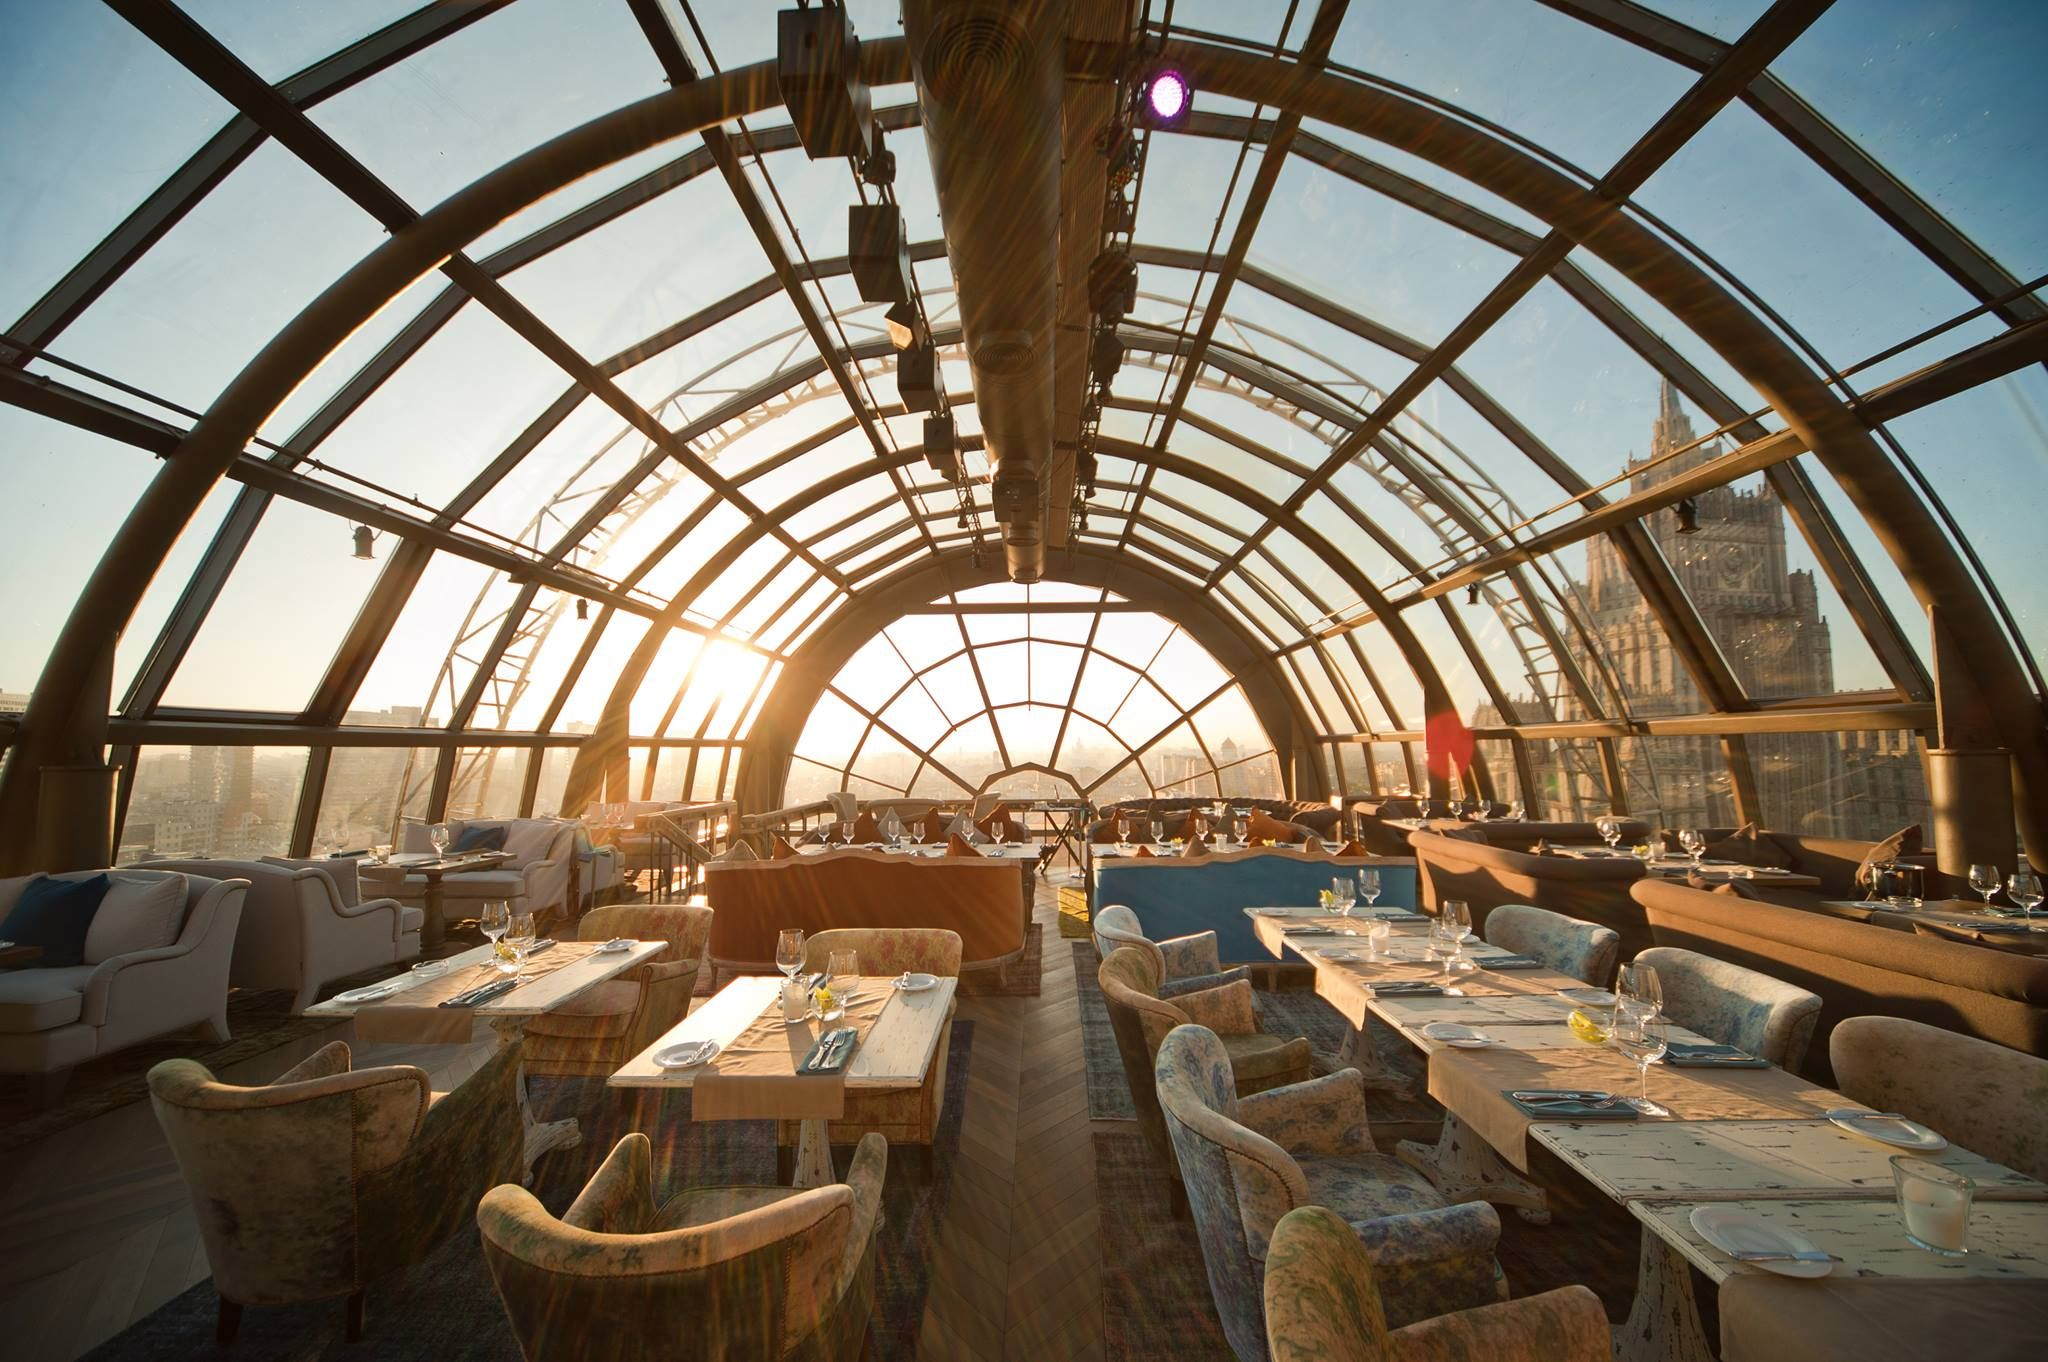 Cafe in Moscow on the roof - a great romantic surprise for the second half 35